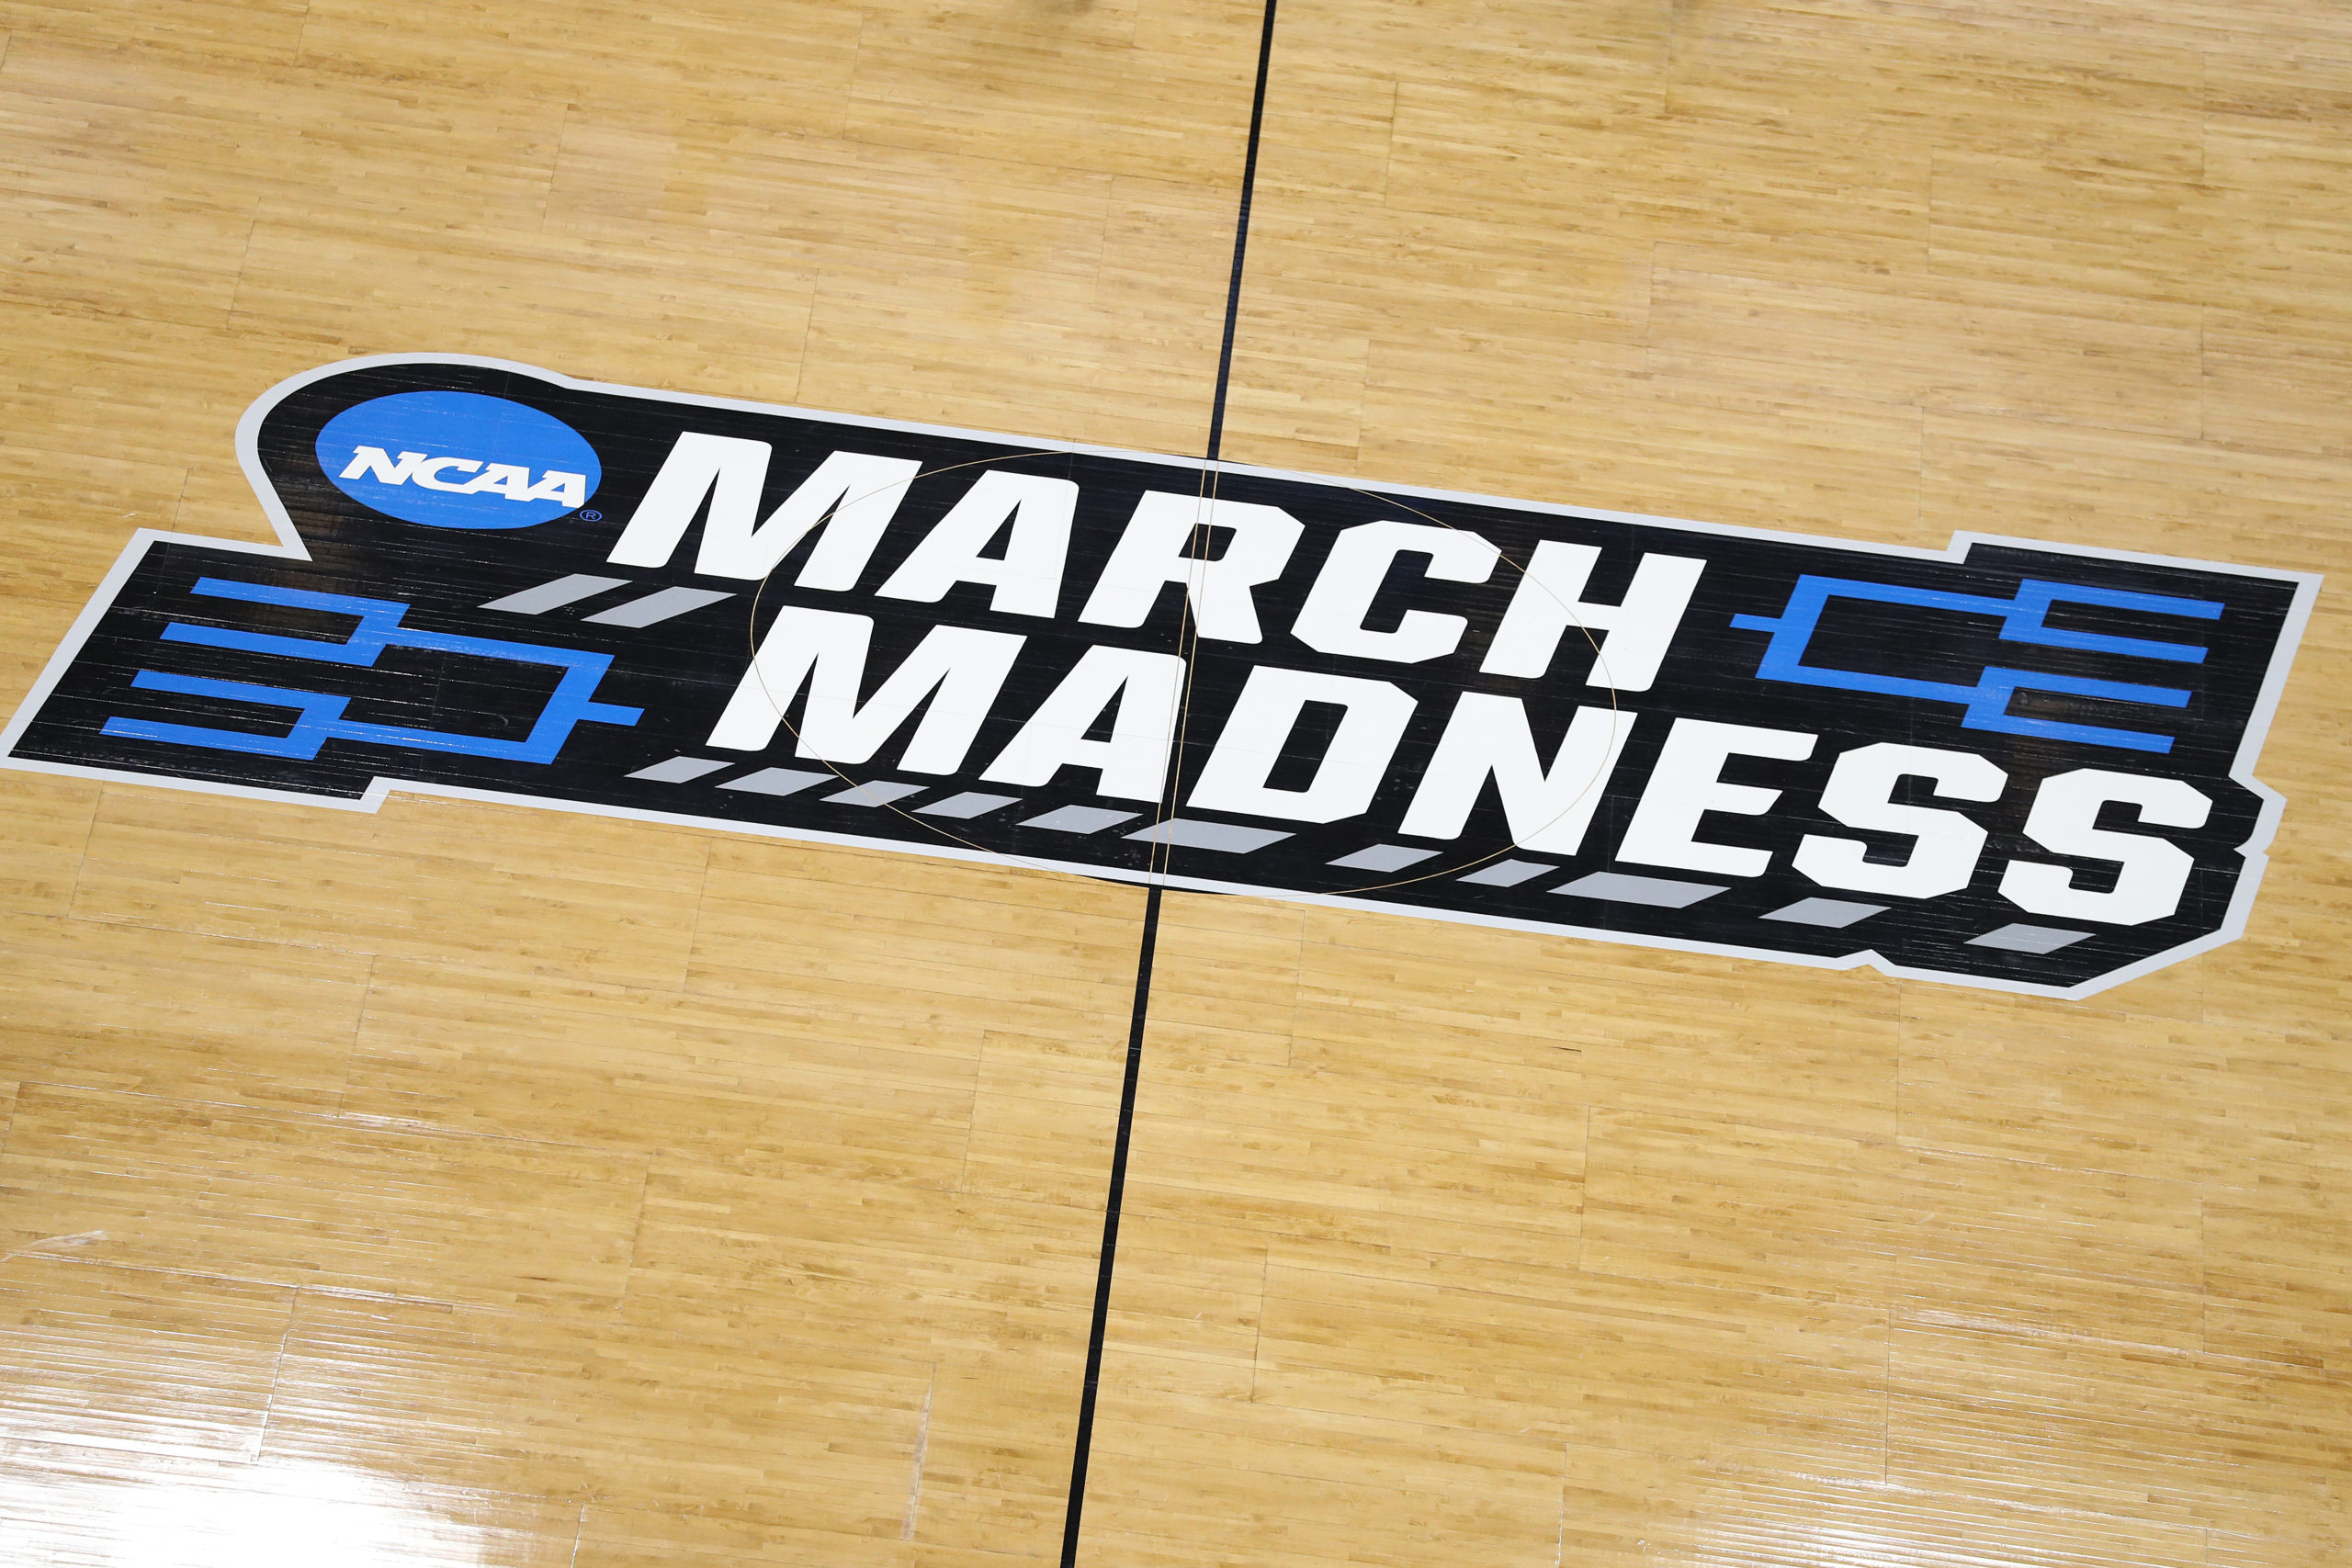 NCAA to allow up to 25% fan capacity at March Madness games